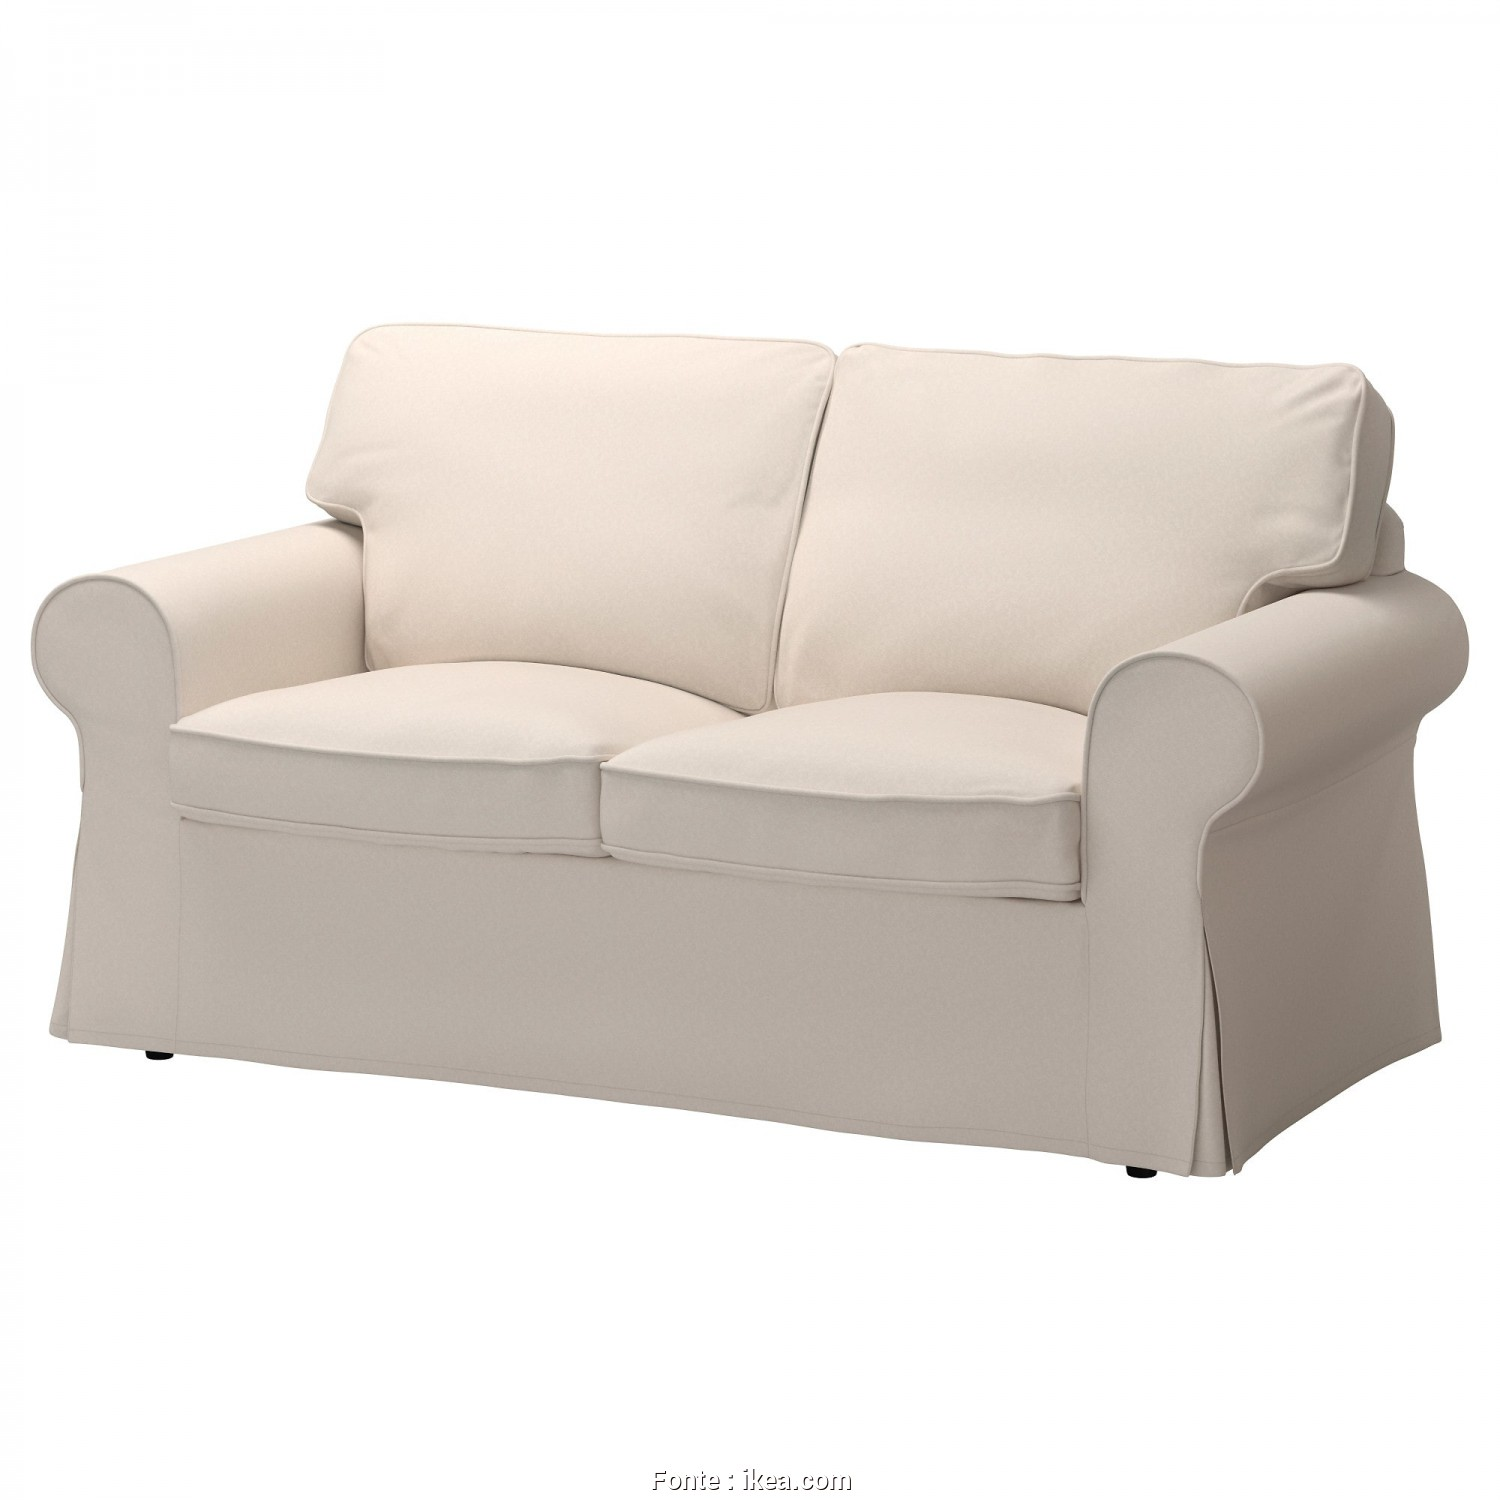 Ikea Soffa Asarum, Elegante IKEA EKTORP Two-Seat Sofa 10 Year Guarantee. Read About, Terms In The